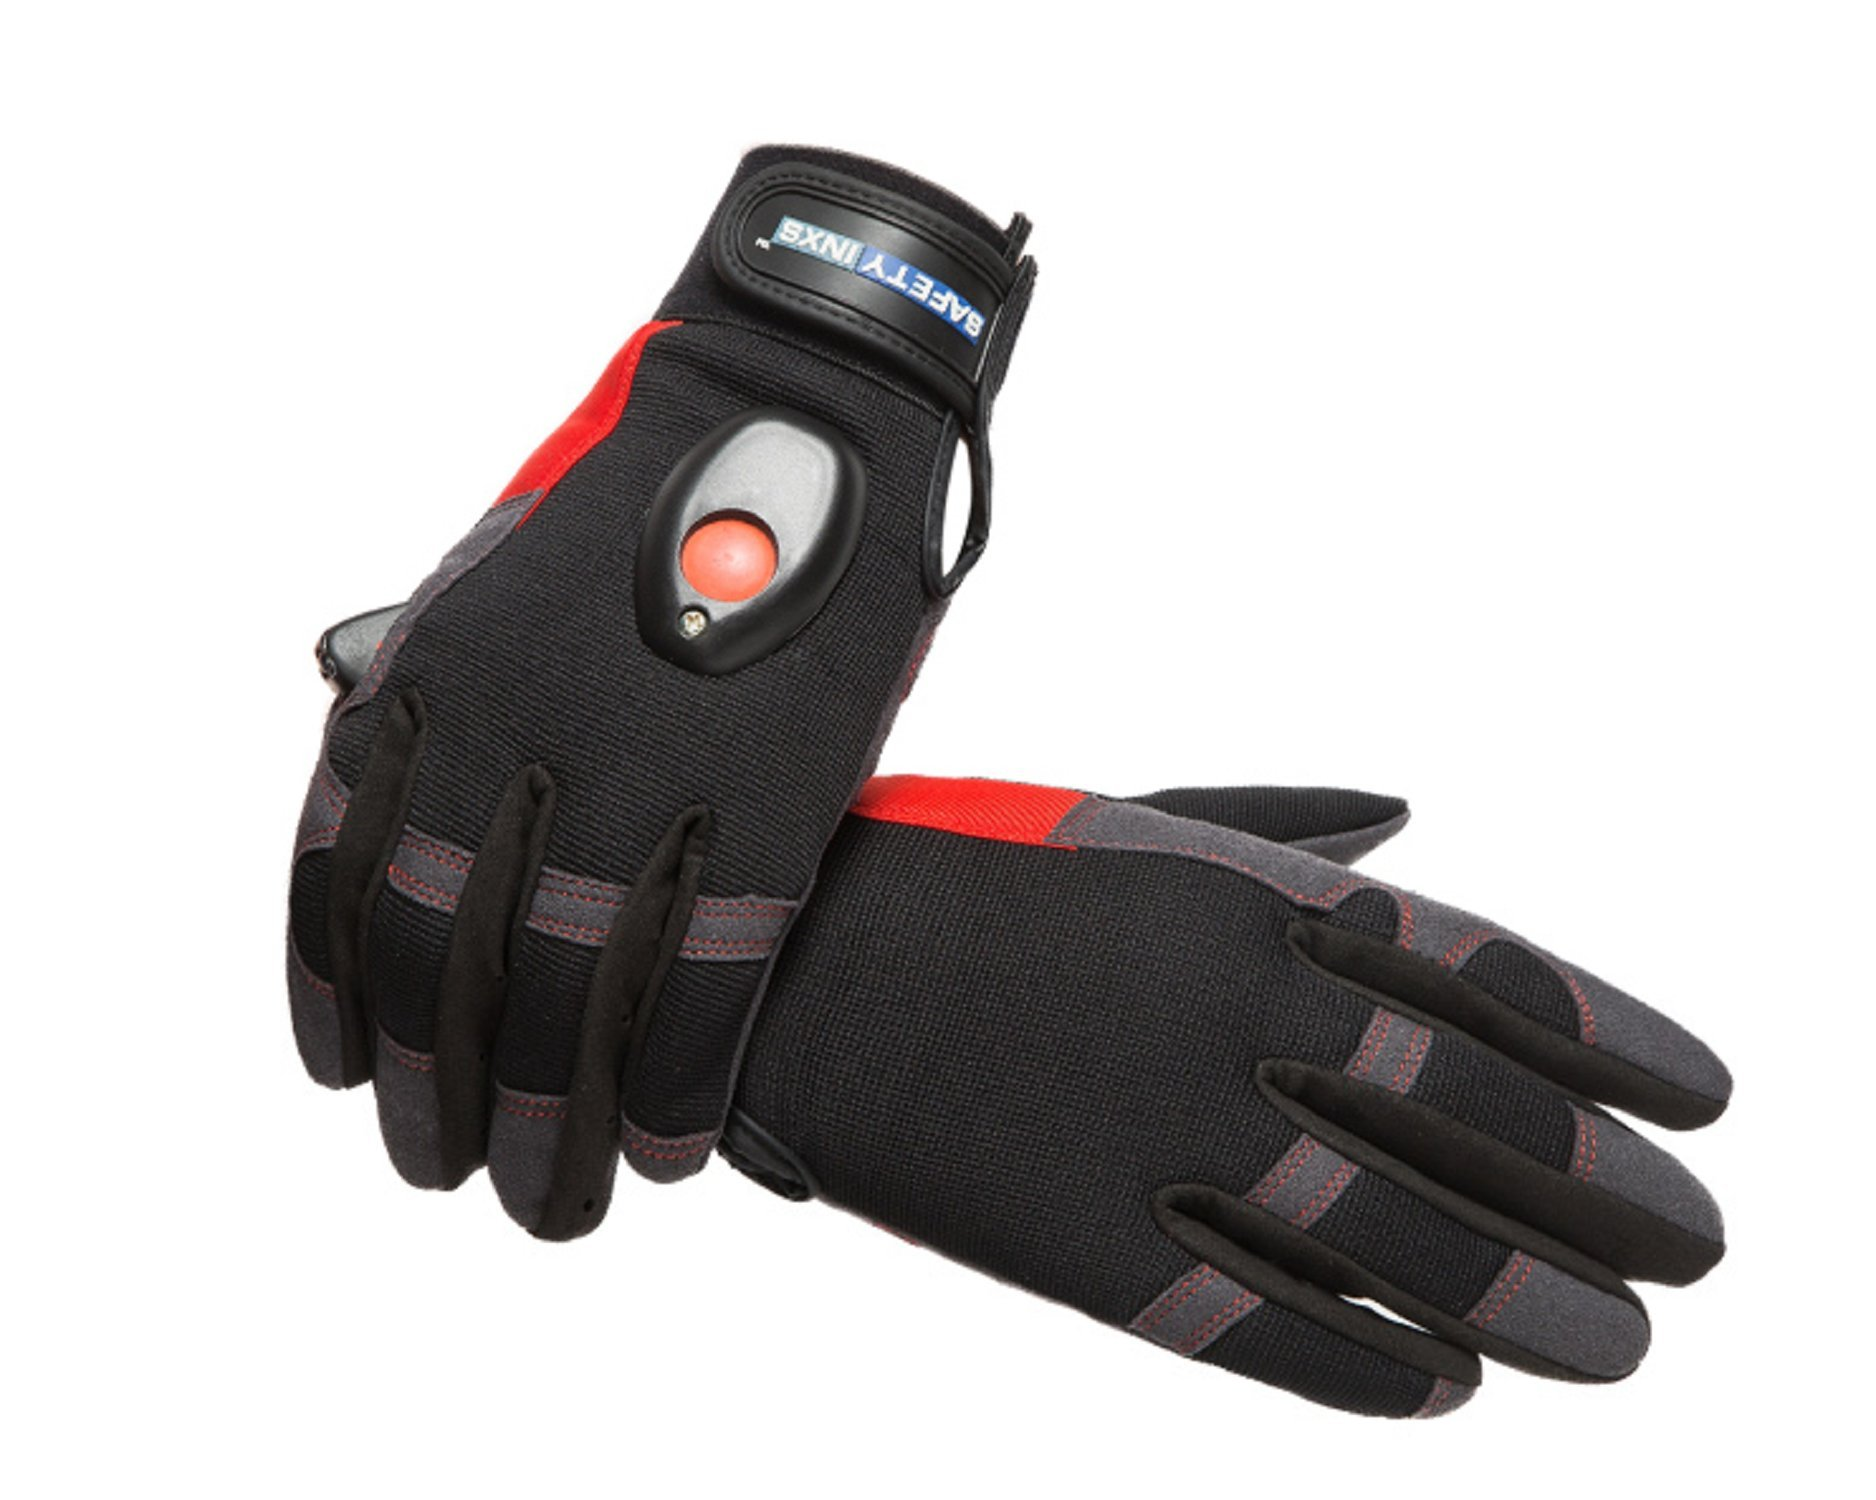 SAFETY-INXS Breathable Mechanic Gloves with Light, Multifunctional Safety General Utility Gloves for Work Sport, Improved Dexterity, Full Finger Outdoor Glove Black, Washable, Large by SAFETY-INXS